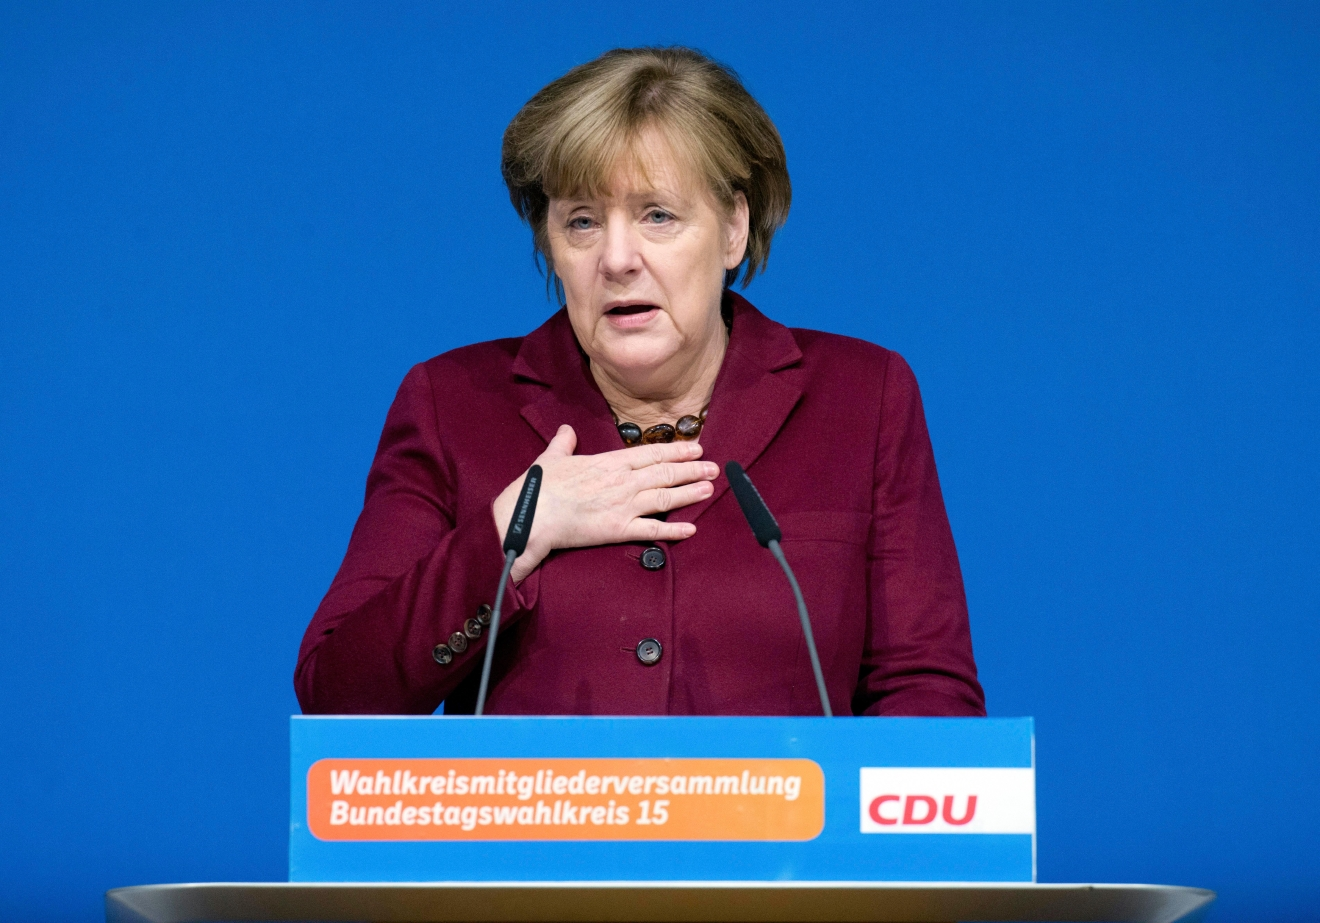 German Chancellor Angela Merkel delivers a speech at a local meeting of her Christian Democrats, CDU, in Grimmen, northern Germany, Saturday, Jan. 28, 2017. Merkel said there's no solution yet to the problem of how to fairly share the burden of migration among European Union member states. (Stefan Sauer/dpa via AP)